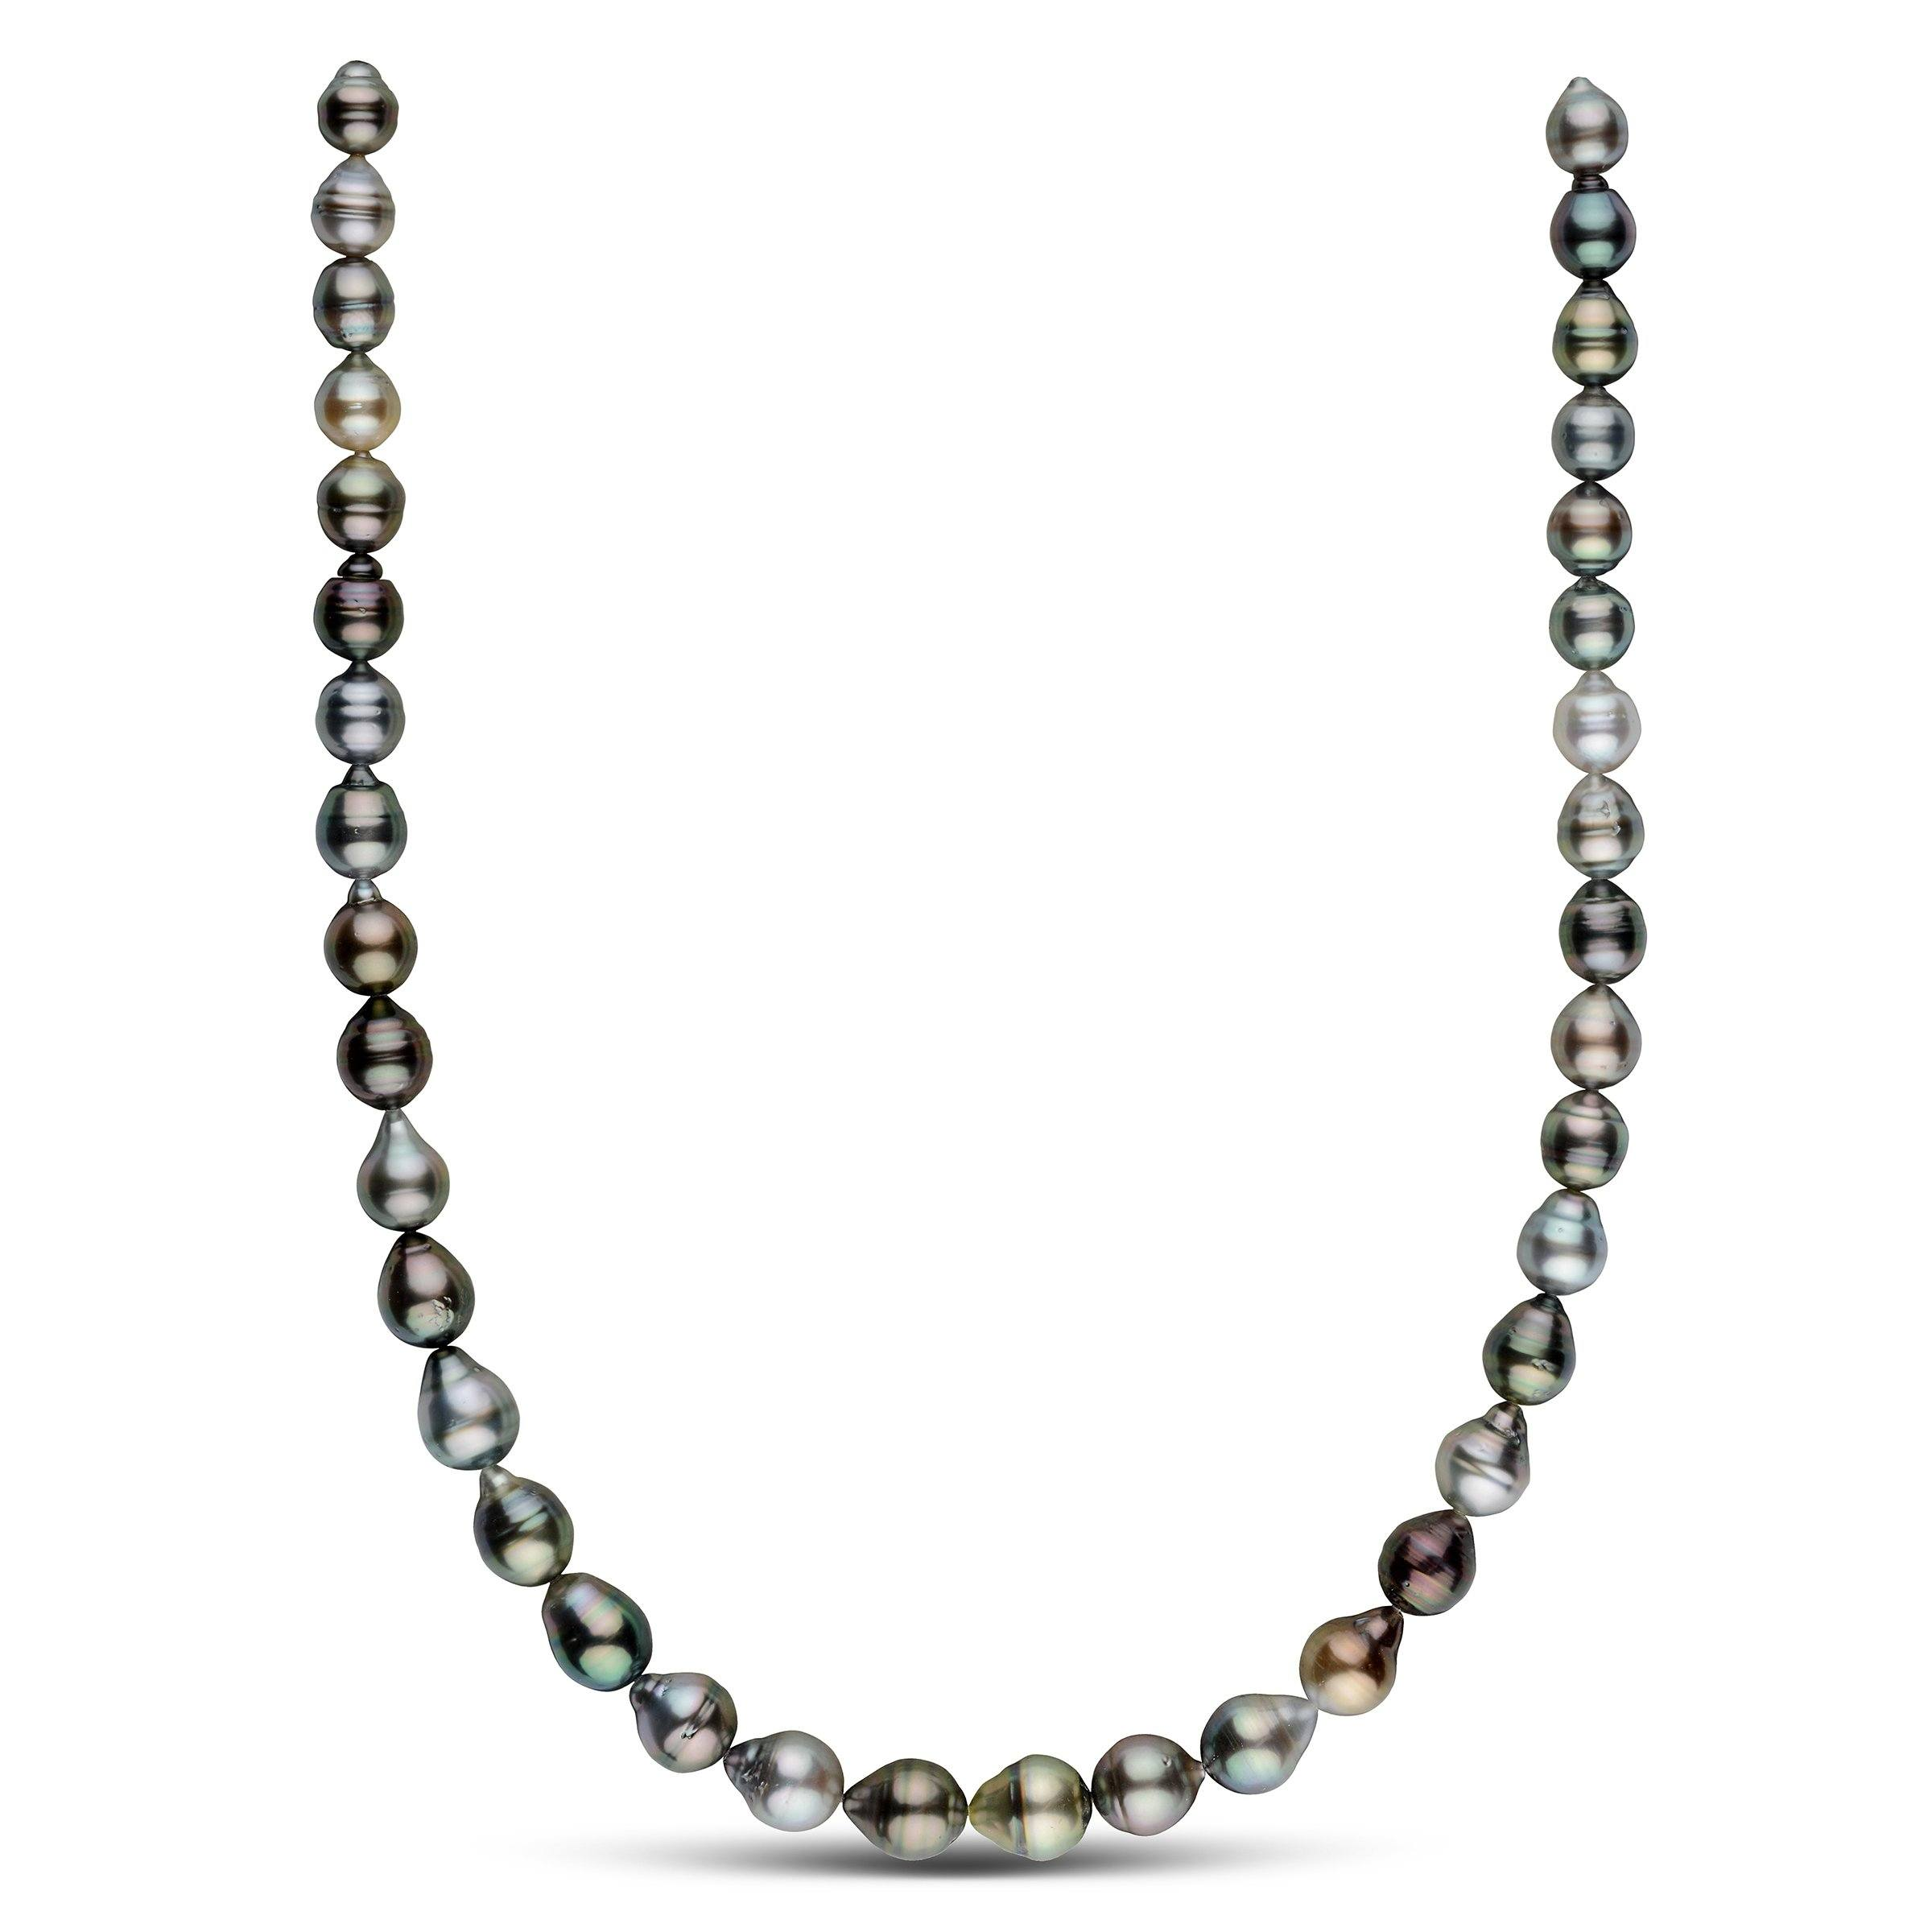 8.0-10.4 mm AA+/AAA Tahitian Baroque Pearl Necklace